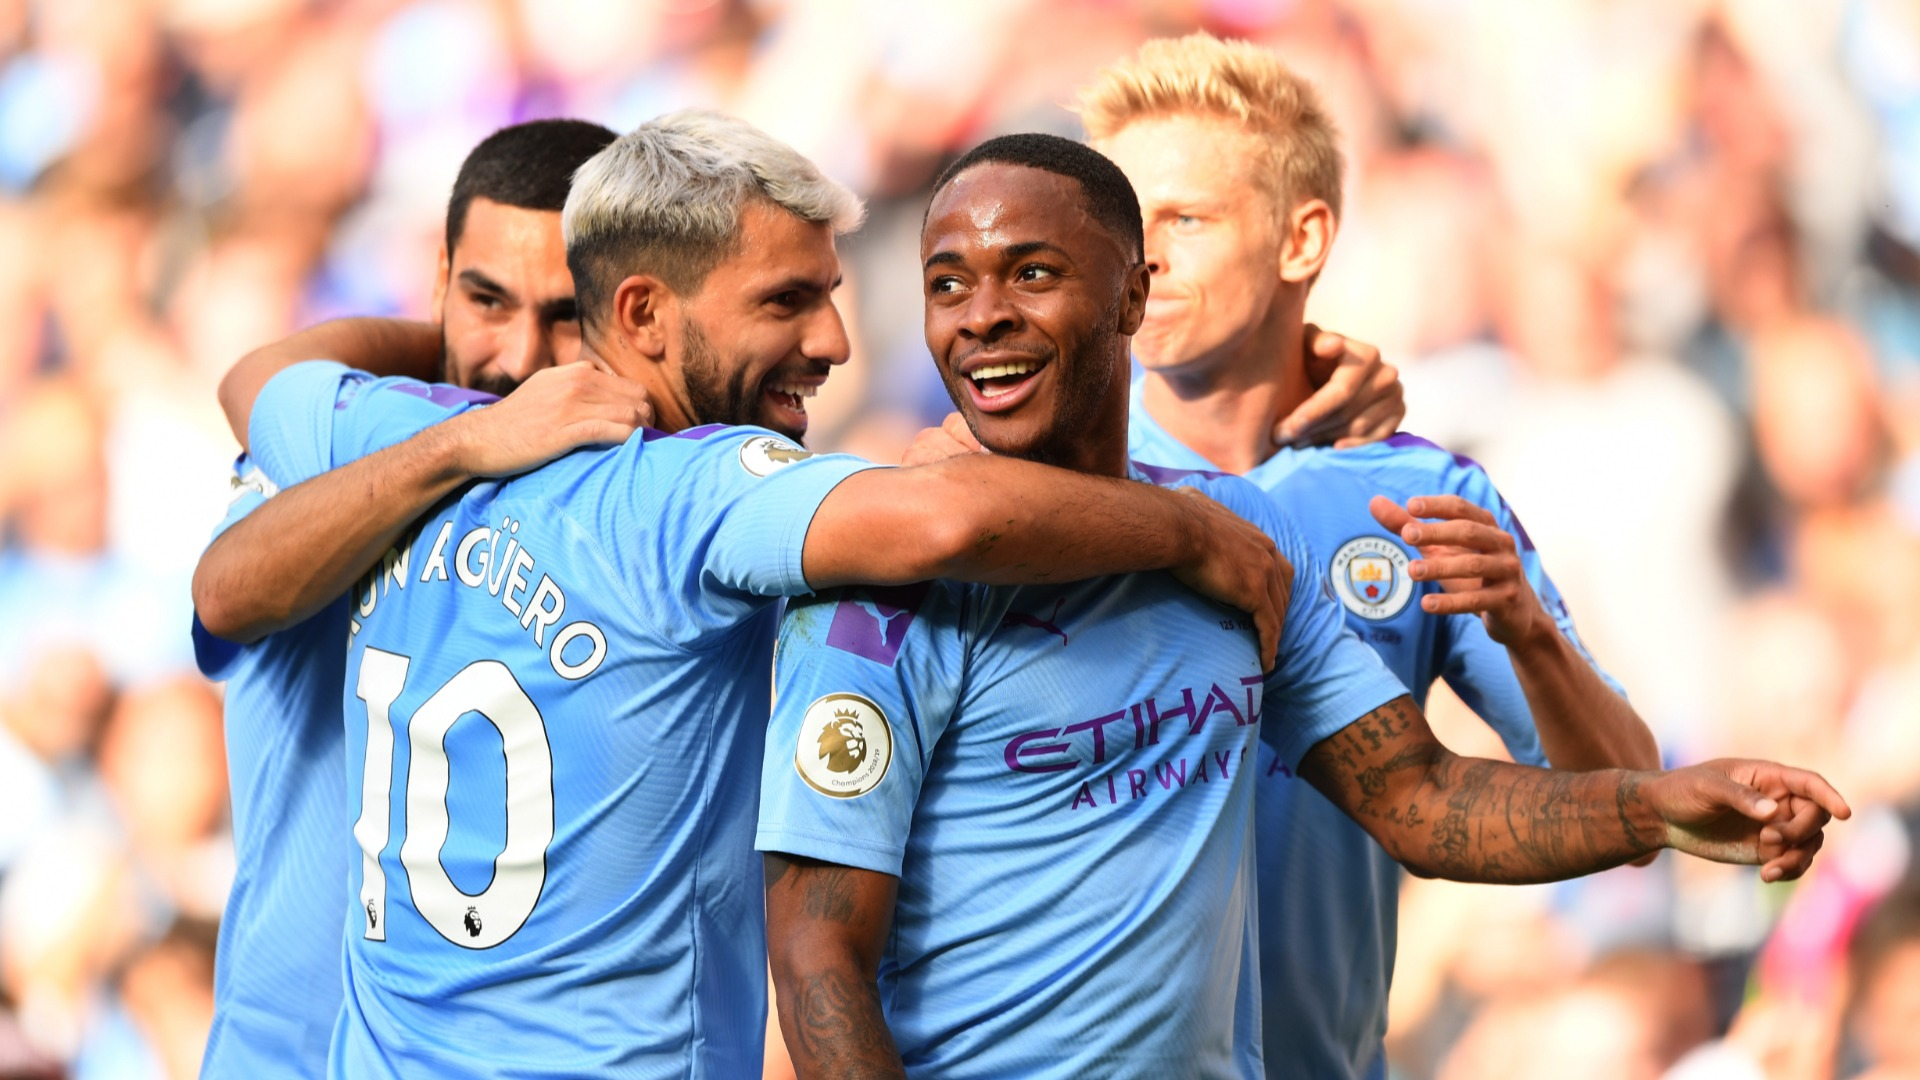 Liverpool may have won their first four games of the Premier League season, but Jamie Carragher labelled Manchester City title favourites.